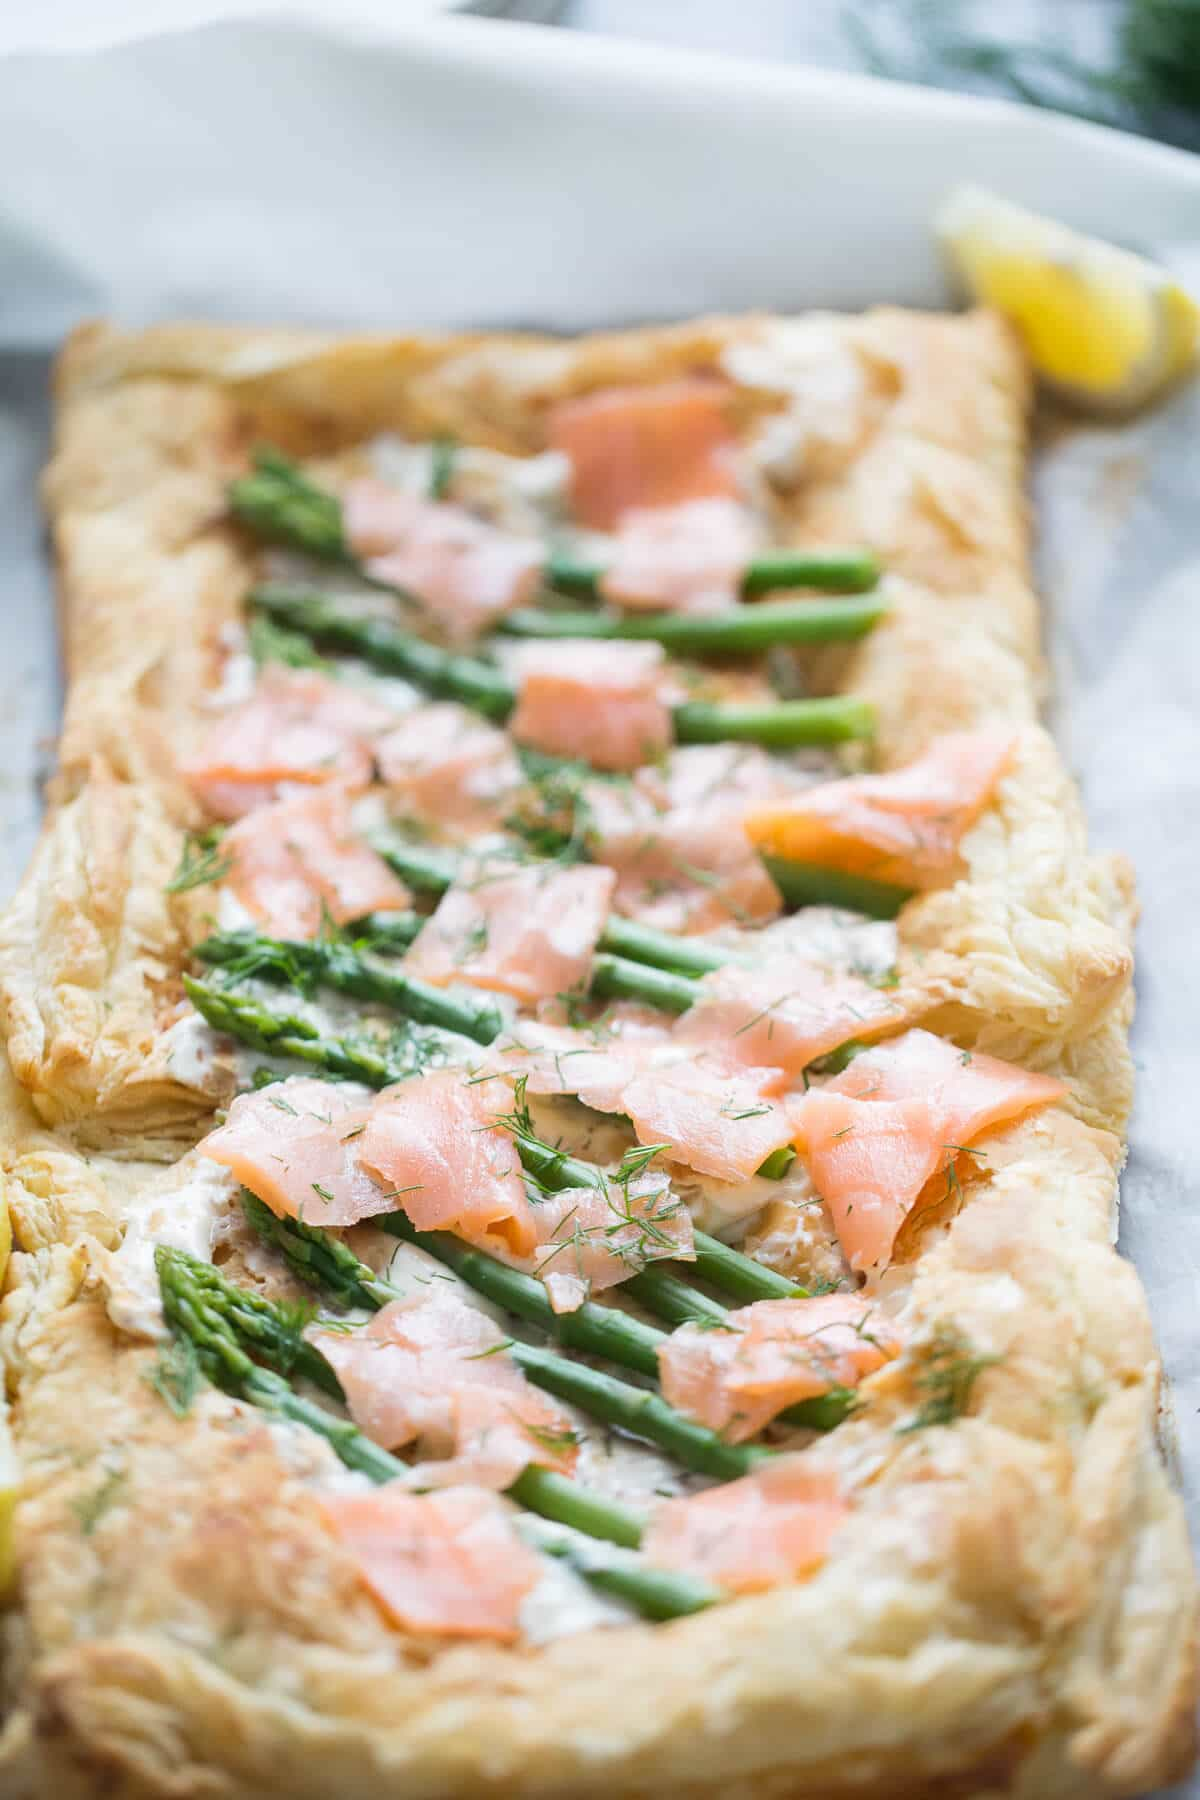 This recipe for asparagus and smoked salmon tart is a simple and elegant addition to any table!